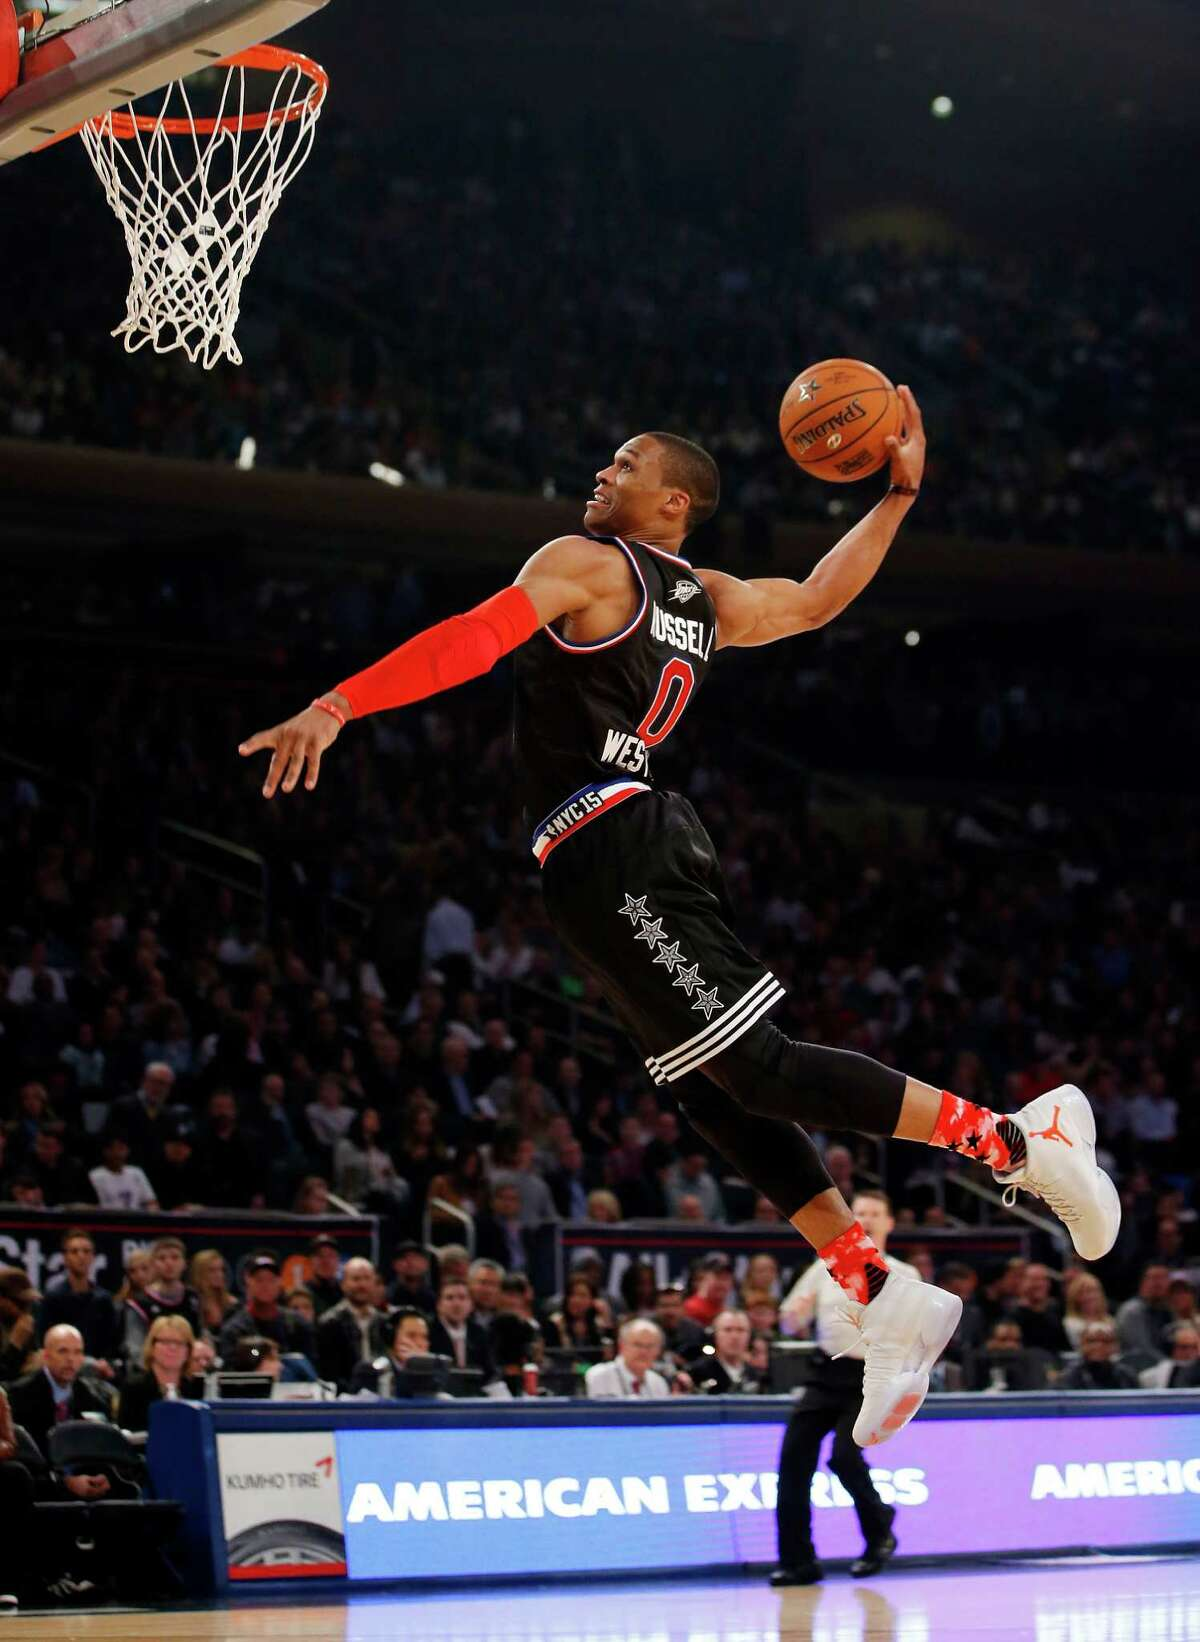 West Team's Russell Westbrook, of the Oklahoma City Thunder, dunks during the first half of the NBA All-Star basketball game, Sunday, Feb. 15, 2015, in New York. (AP Photo/Kathy Willens) ORG XMIT: MSG127